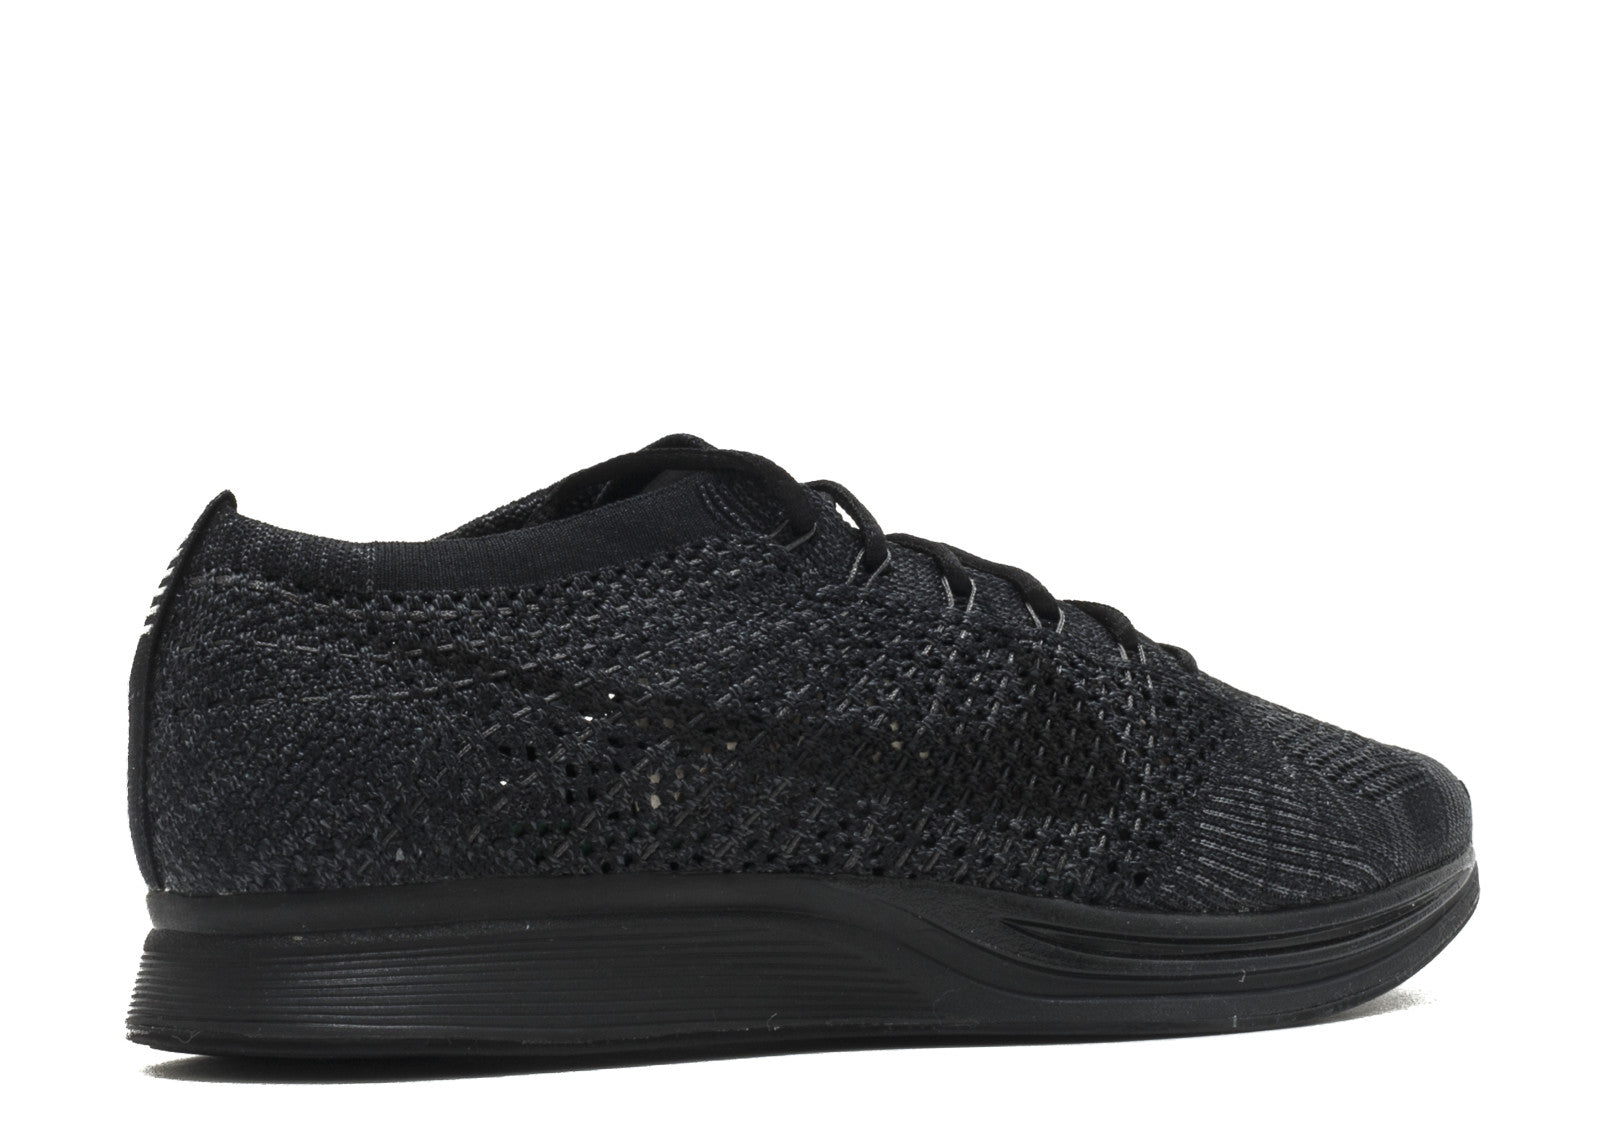 3b2d6fc0a5 Nike Flyknit Racer 'Midnight' – CREP LDN